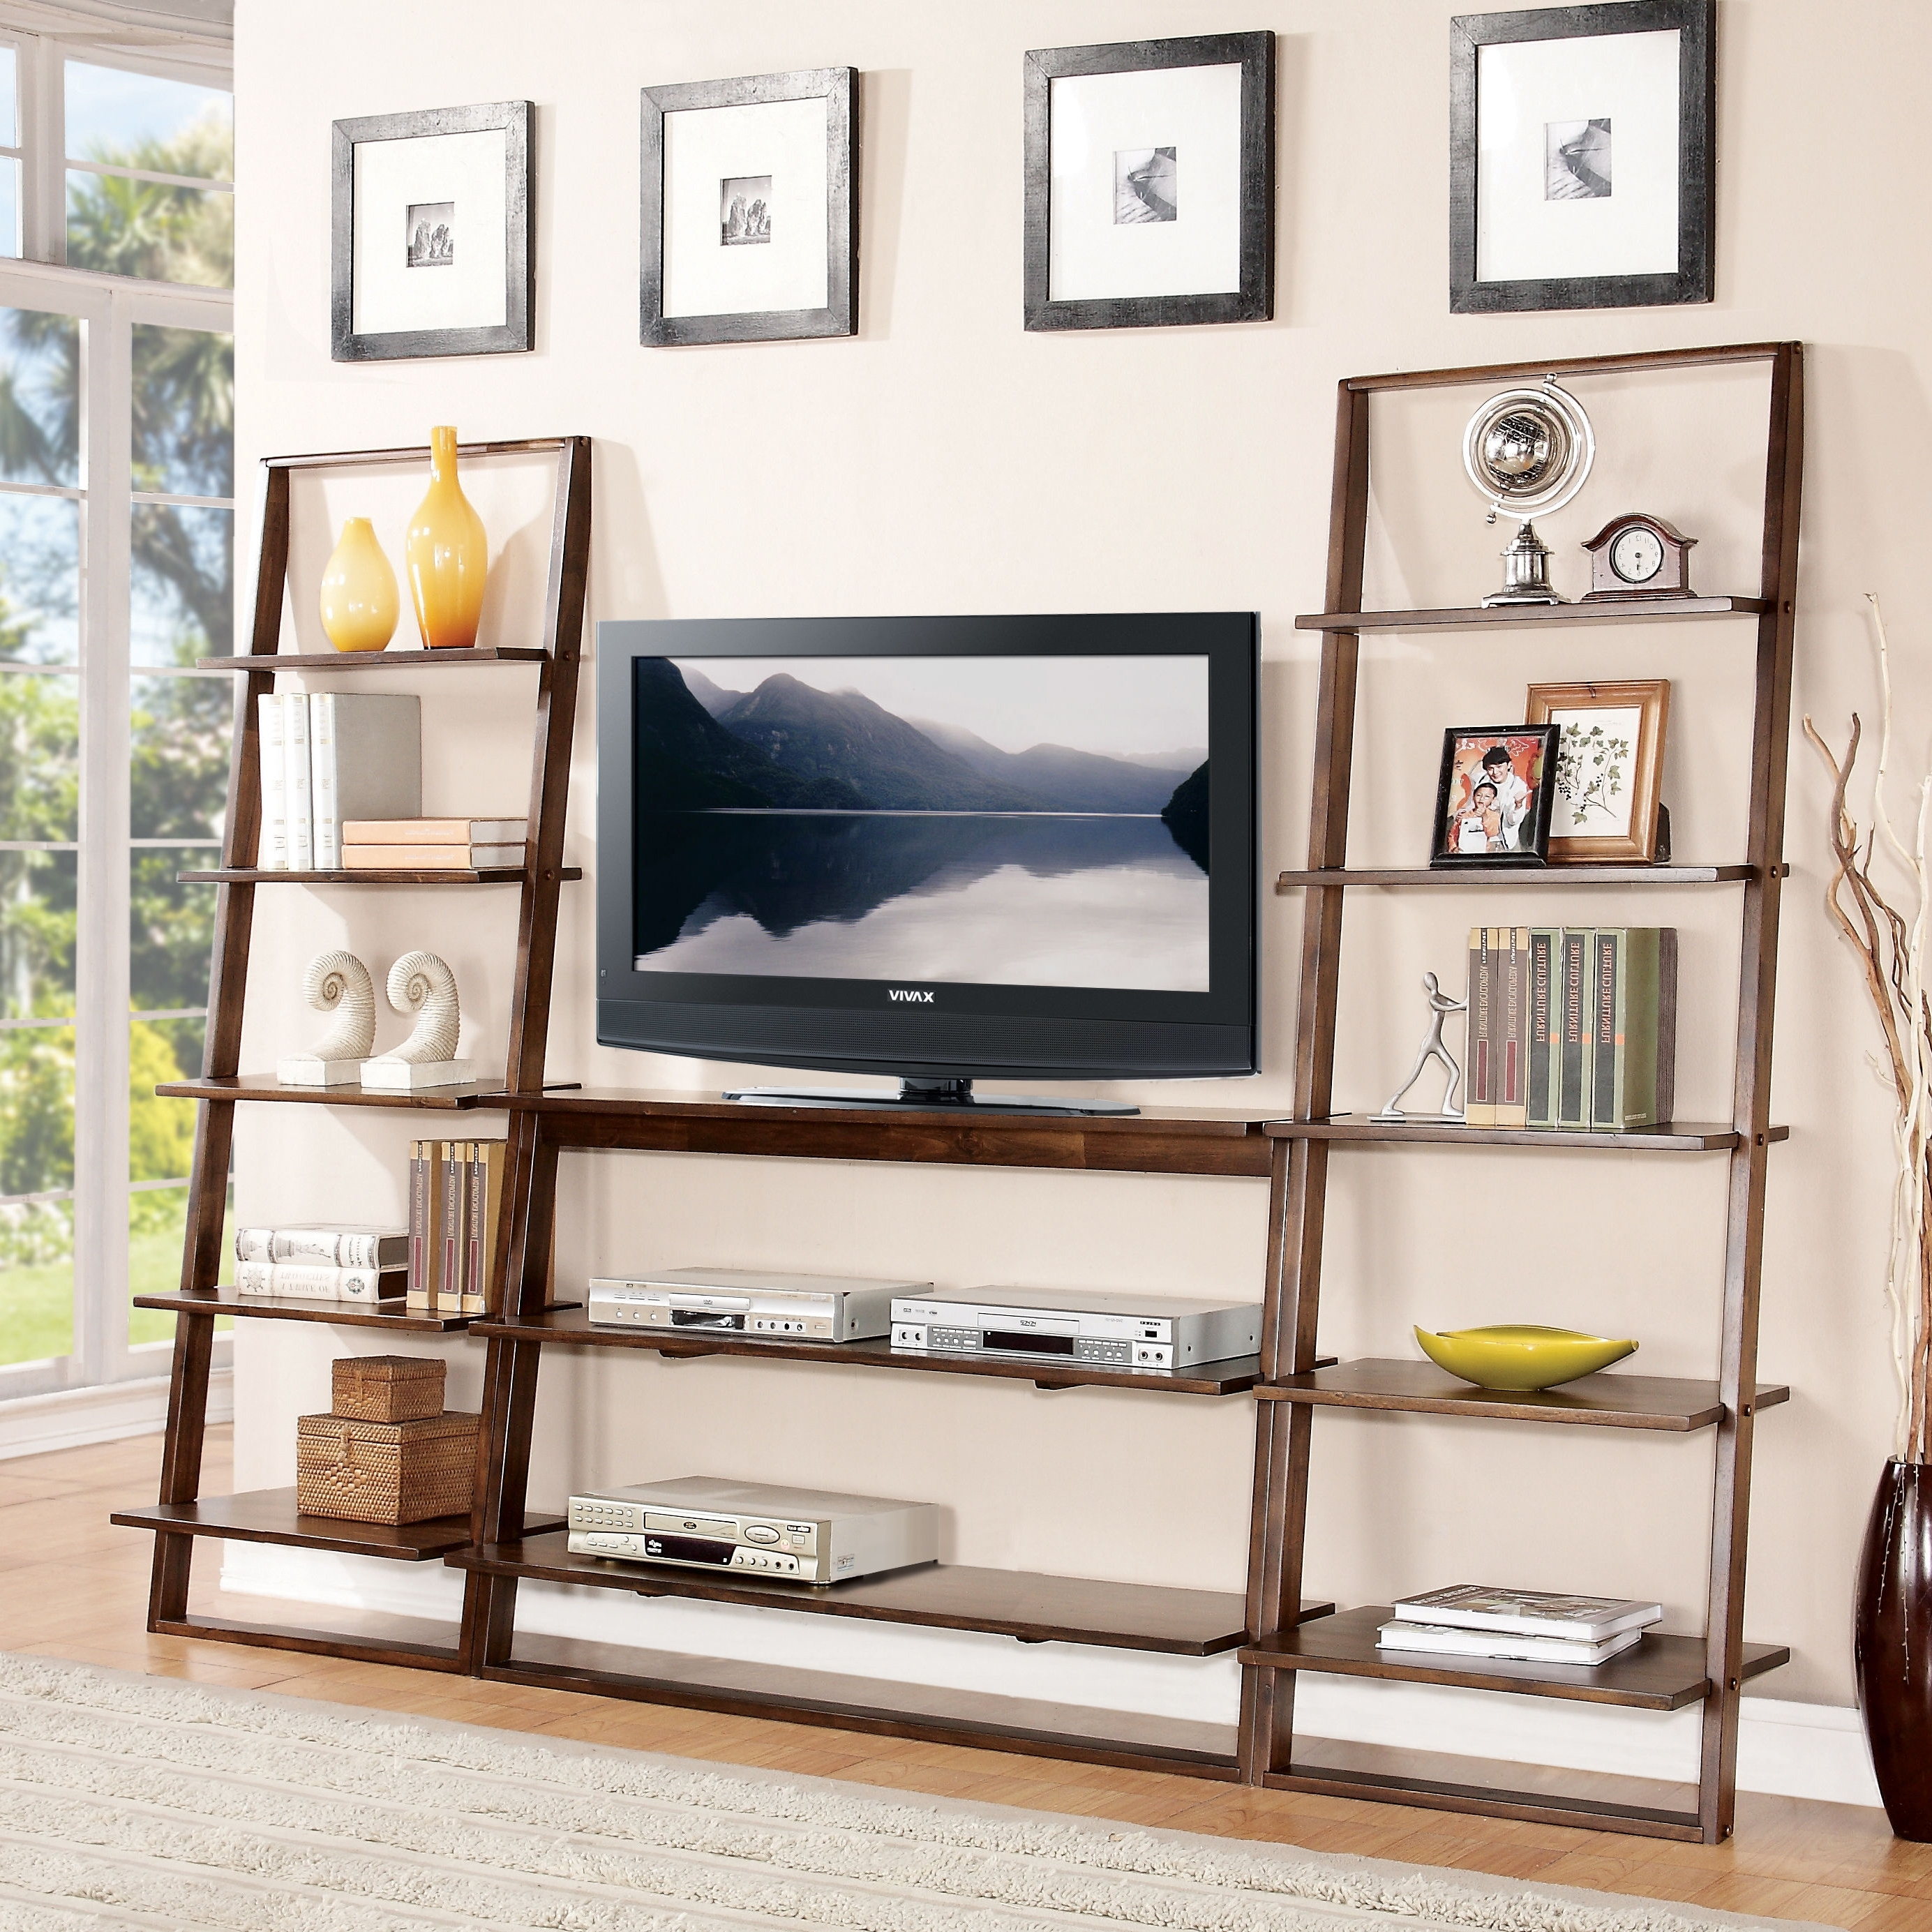 Tv Stand Bookcases Pertaining To Famous Contemporary Leaning Bookcase Ideas: Minimalist Leaning Bookcase (View 6 of 15)